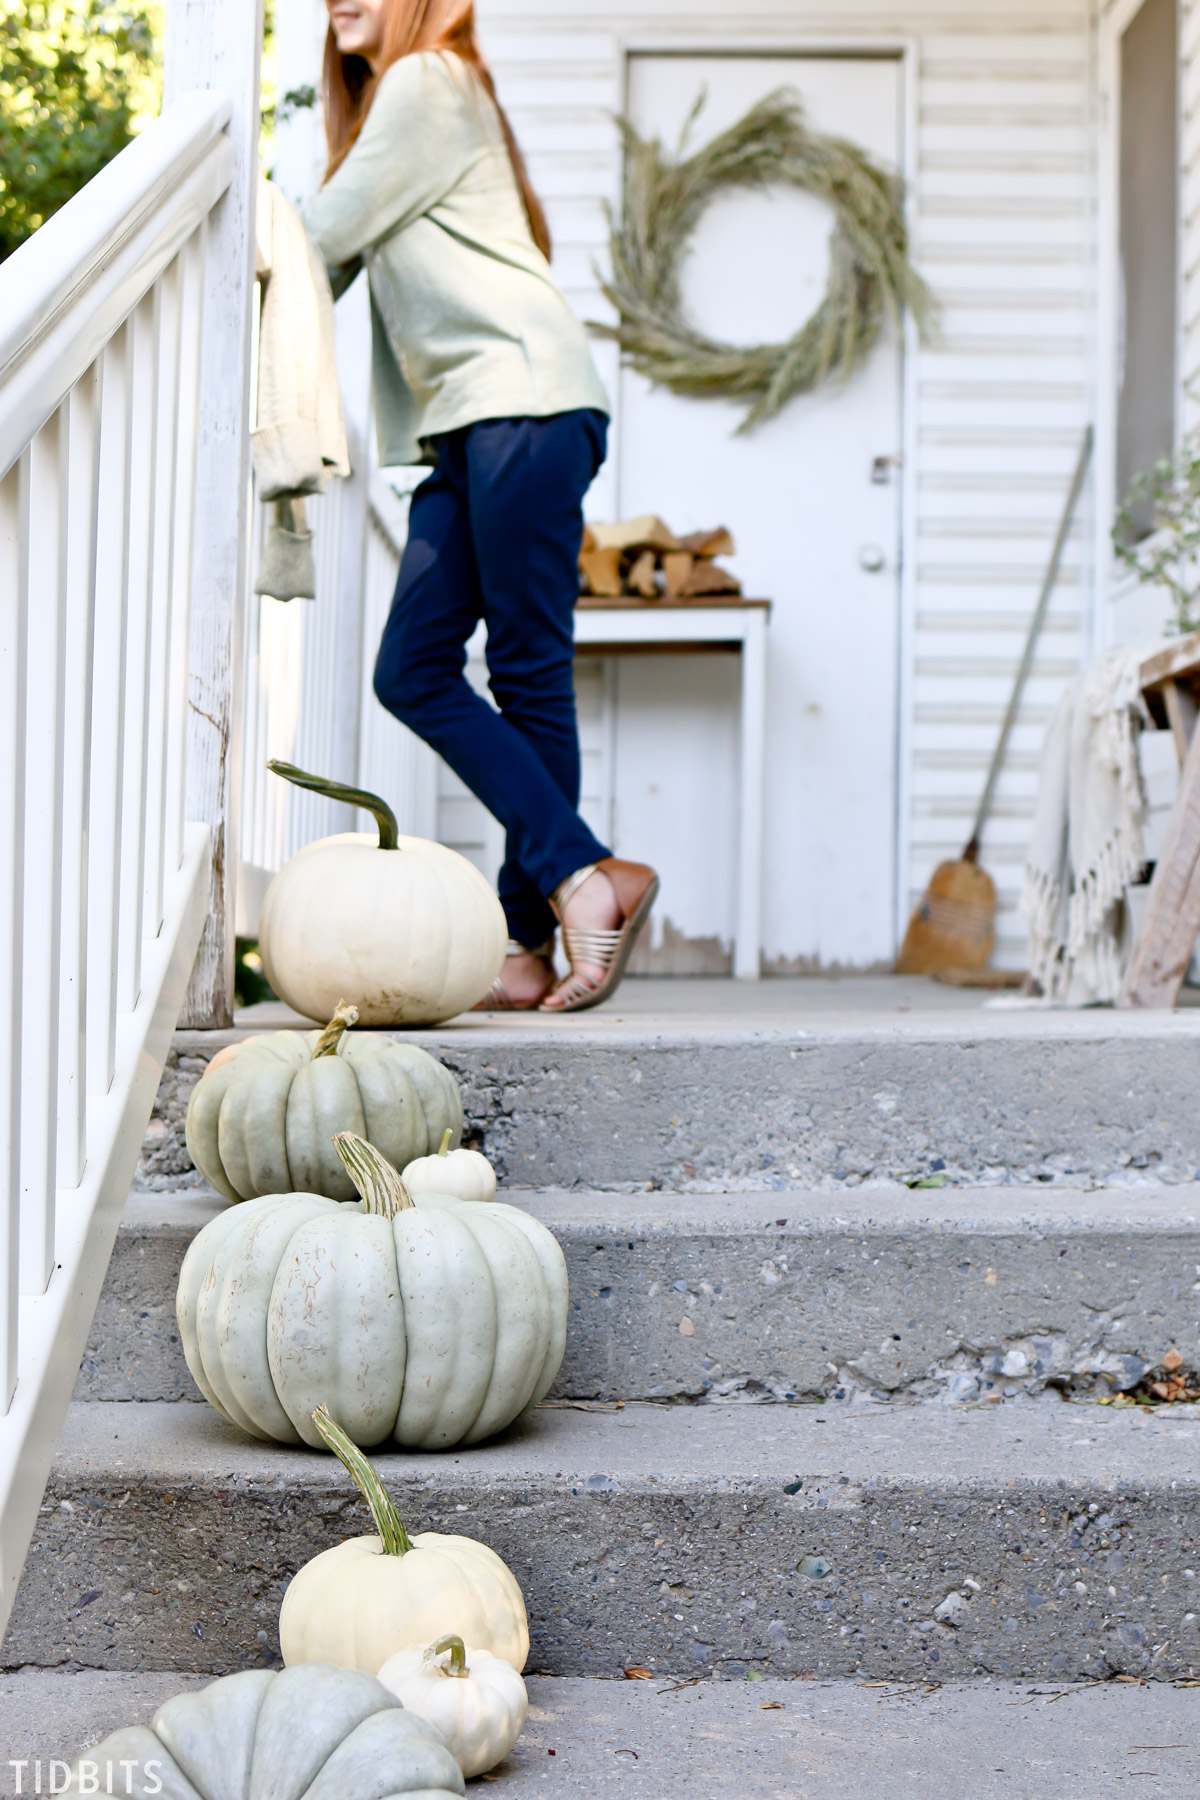 heirloom pumpkins on porch steps